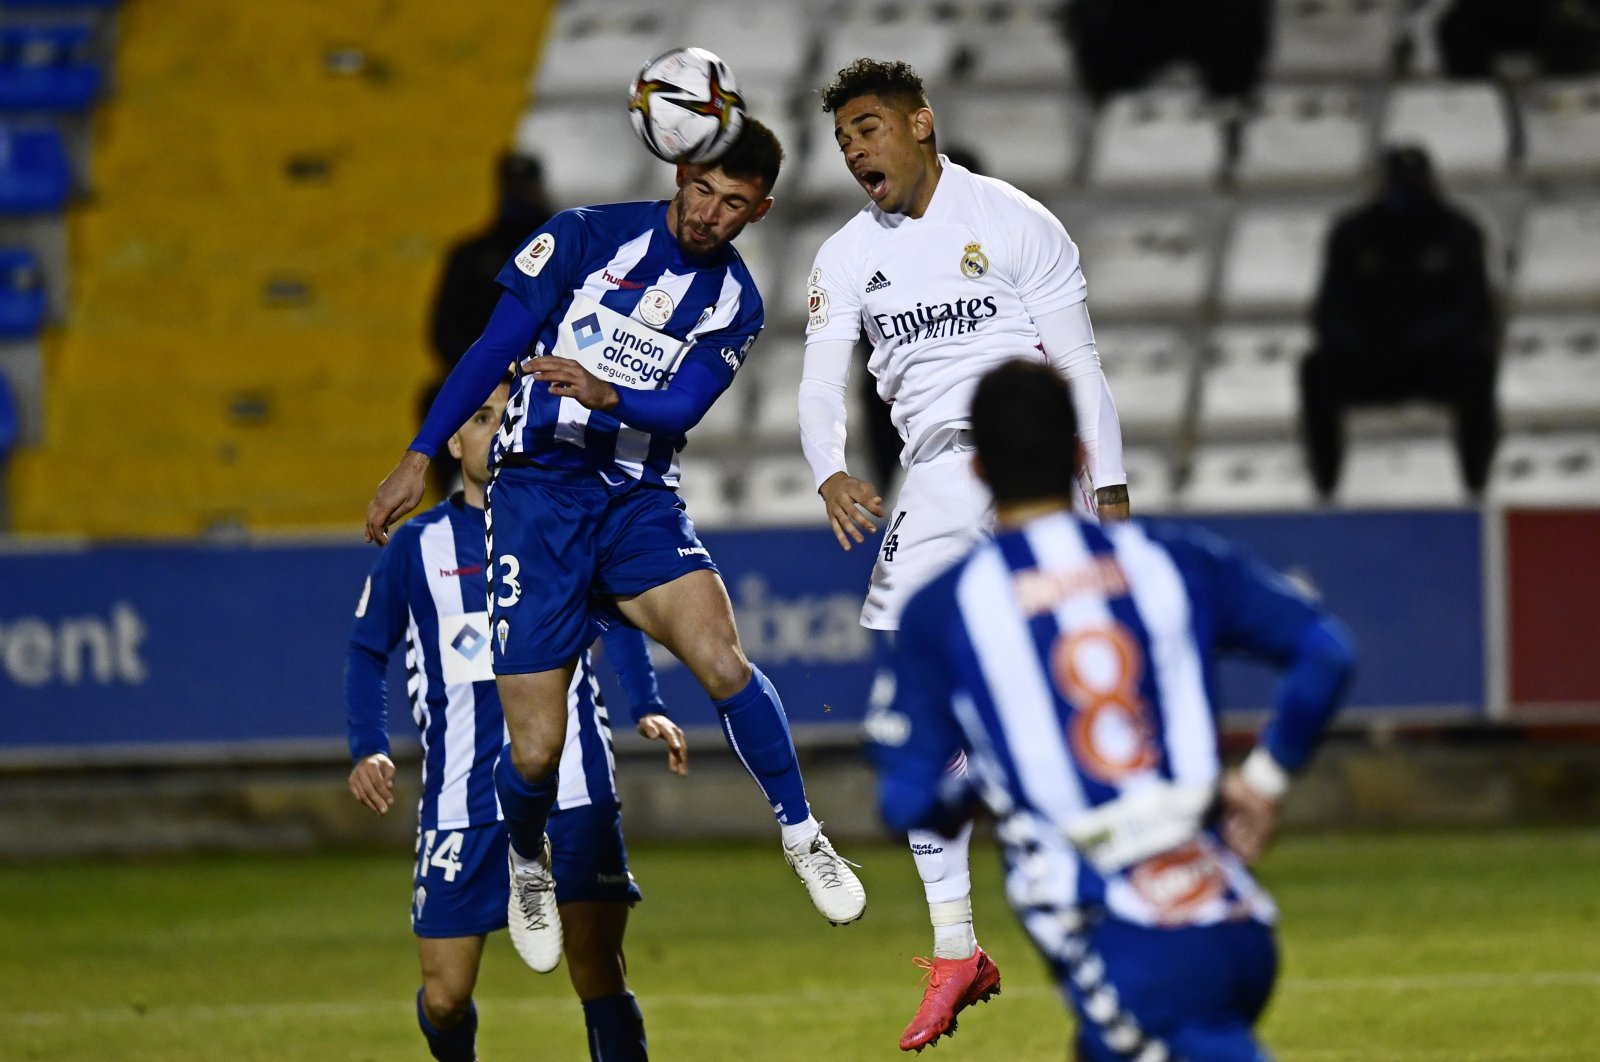 Alcoyano's Jose Solbes (L) and Real Madrid's Mariano Diaz vie for the ball during a Copa del Rey match at the El Collao stadium, Alcoy, Spain, Jan. 20, 2021. (AP Photo)